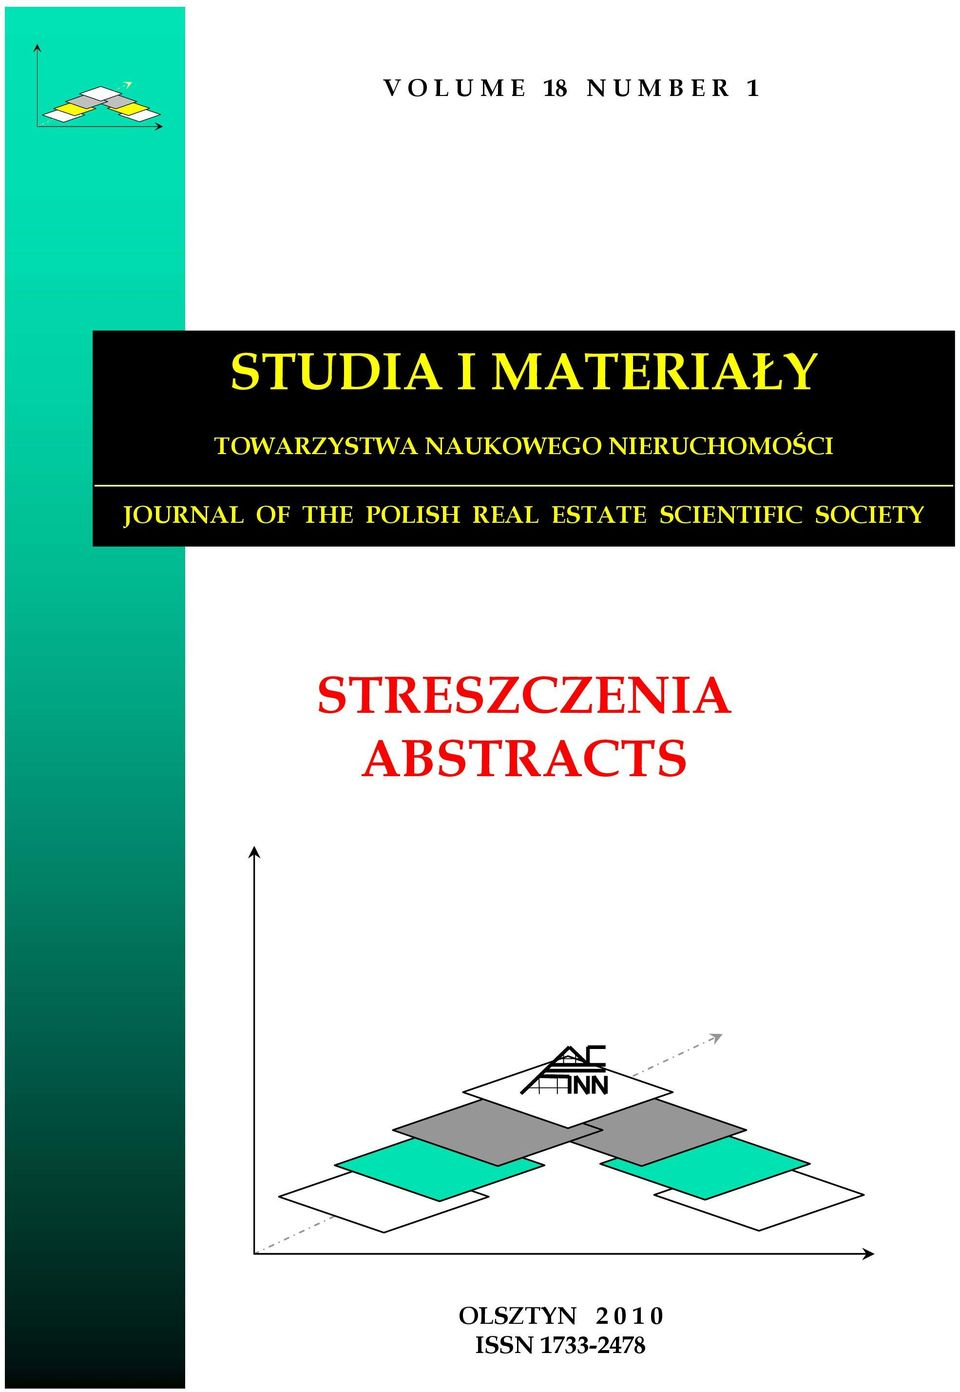 THE POLISH REAL ESTATE SCIENTIFIC SOCIETY